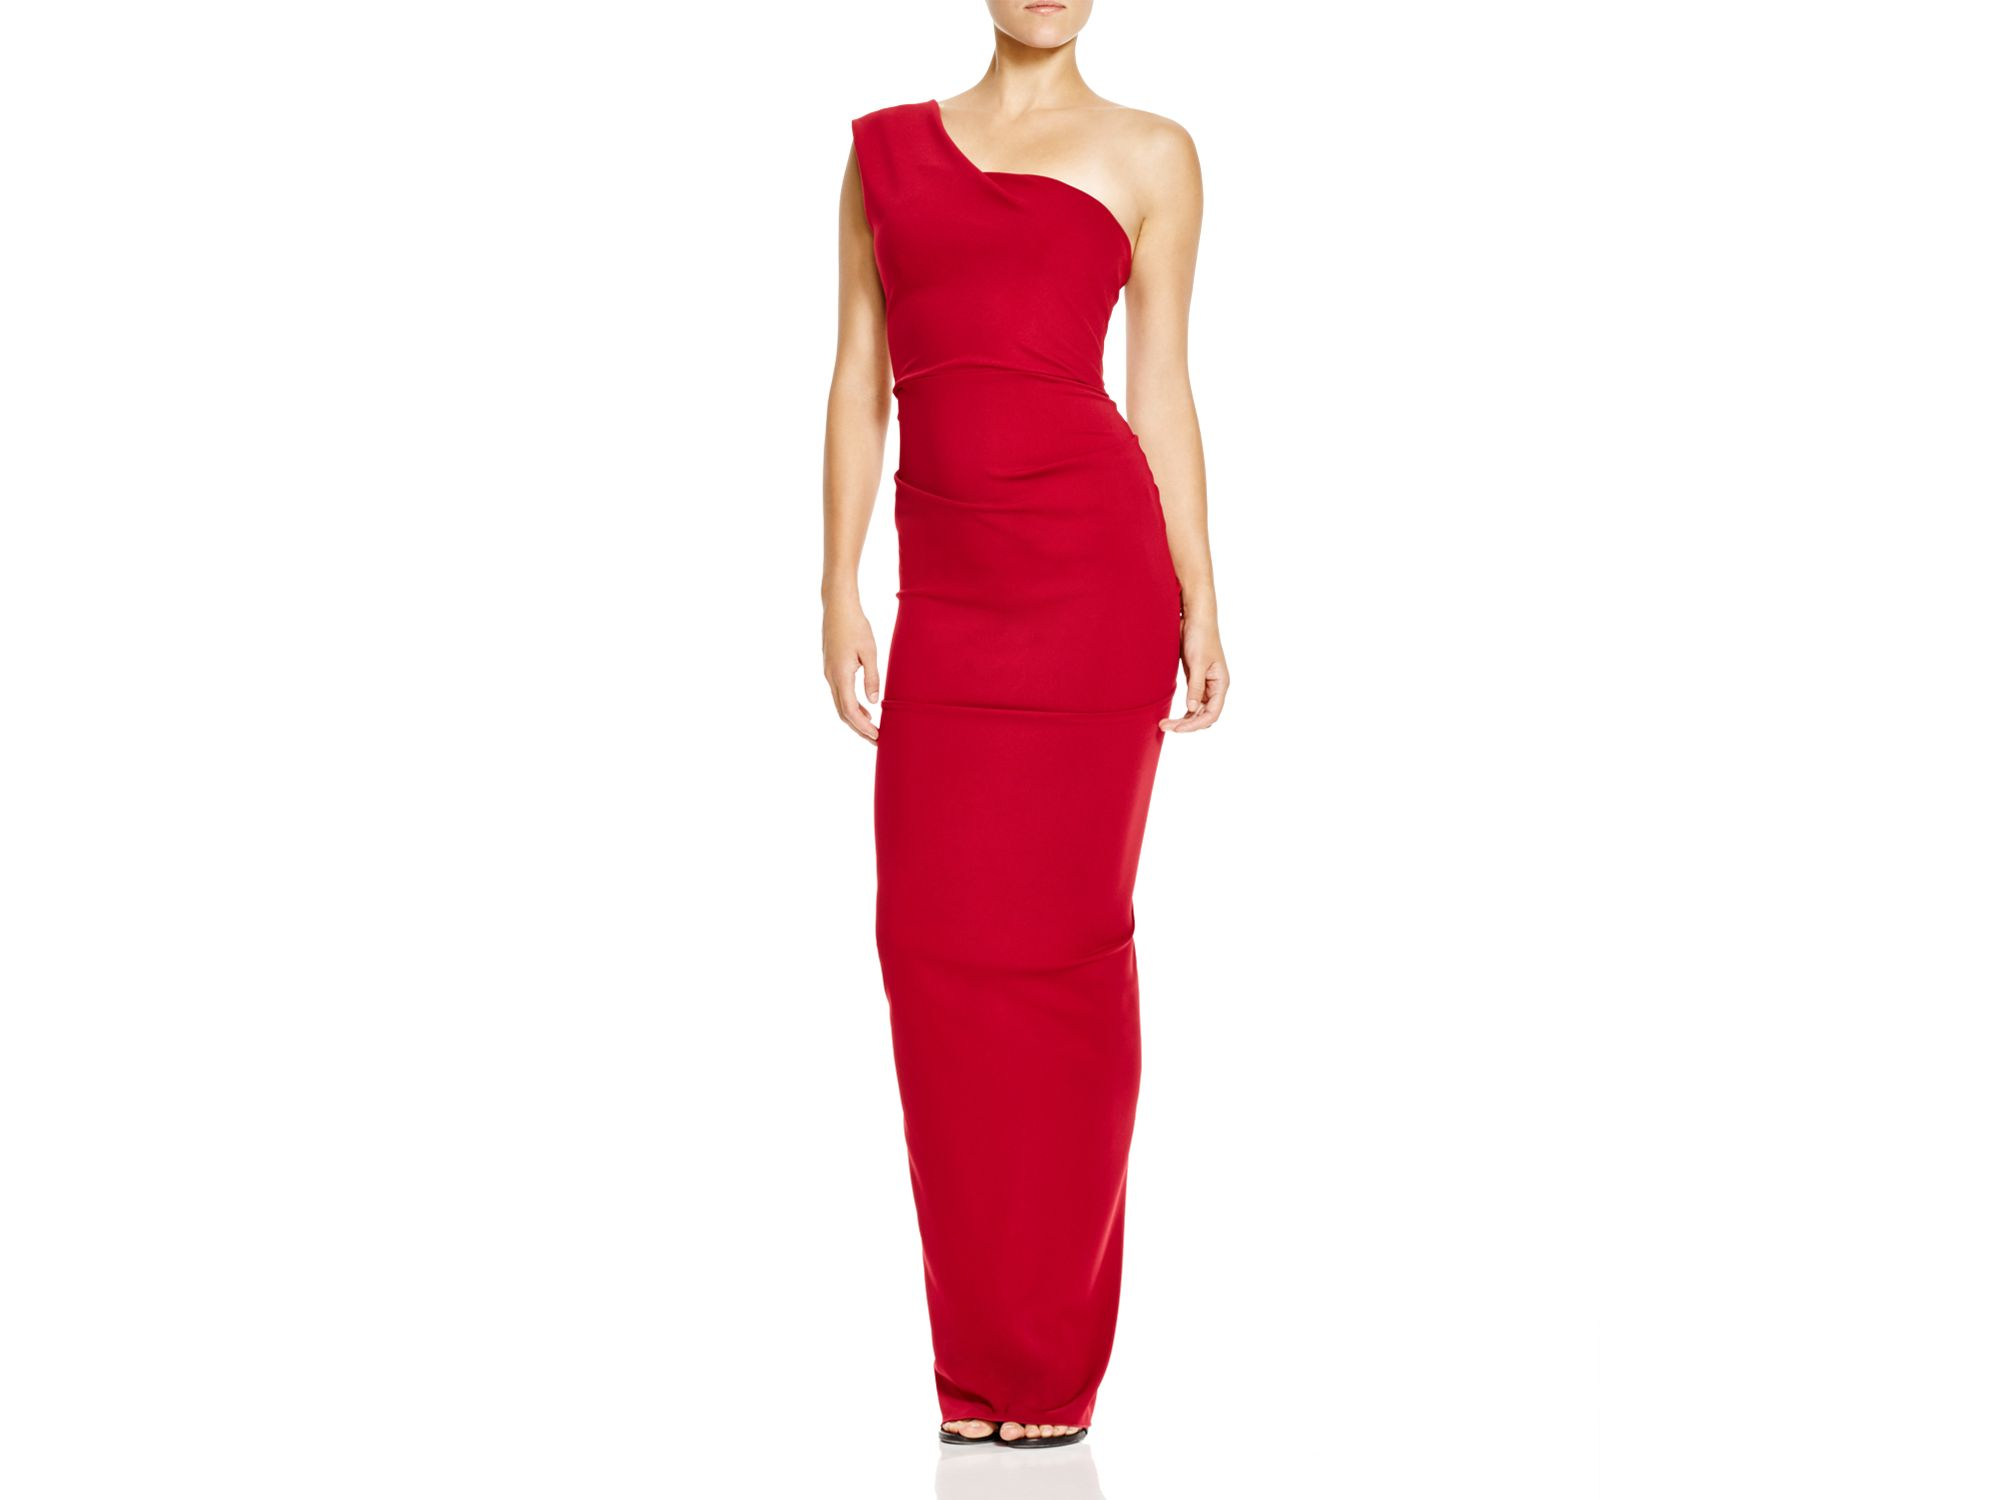 f279d5ae6d87 Nicole Bakti One Shoulder Ruffle Back Gown in Red - Lyst